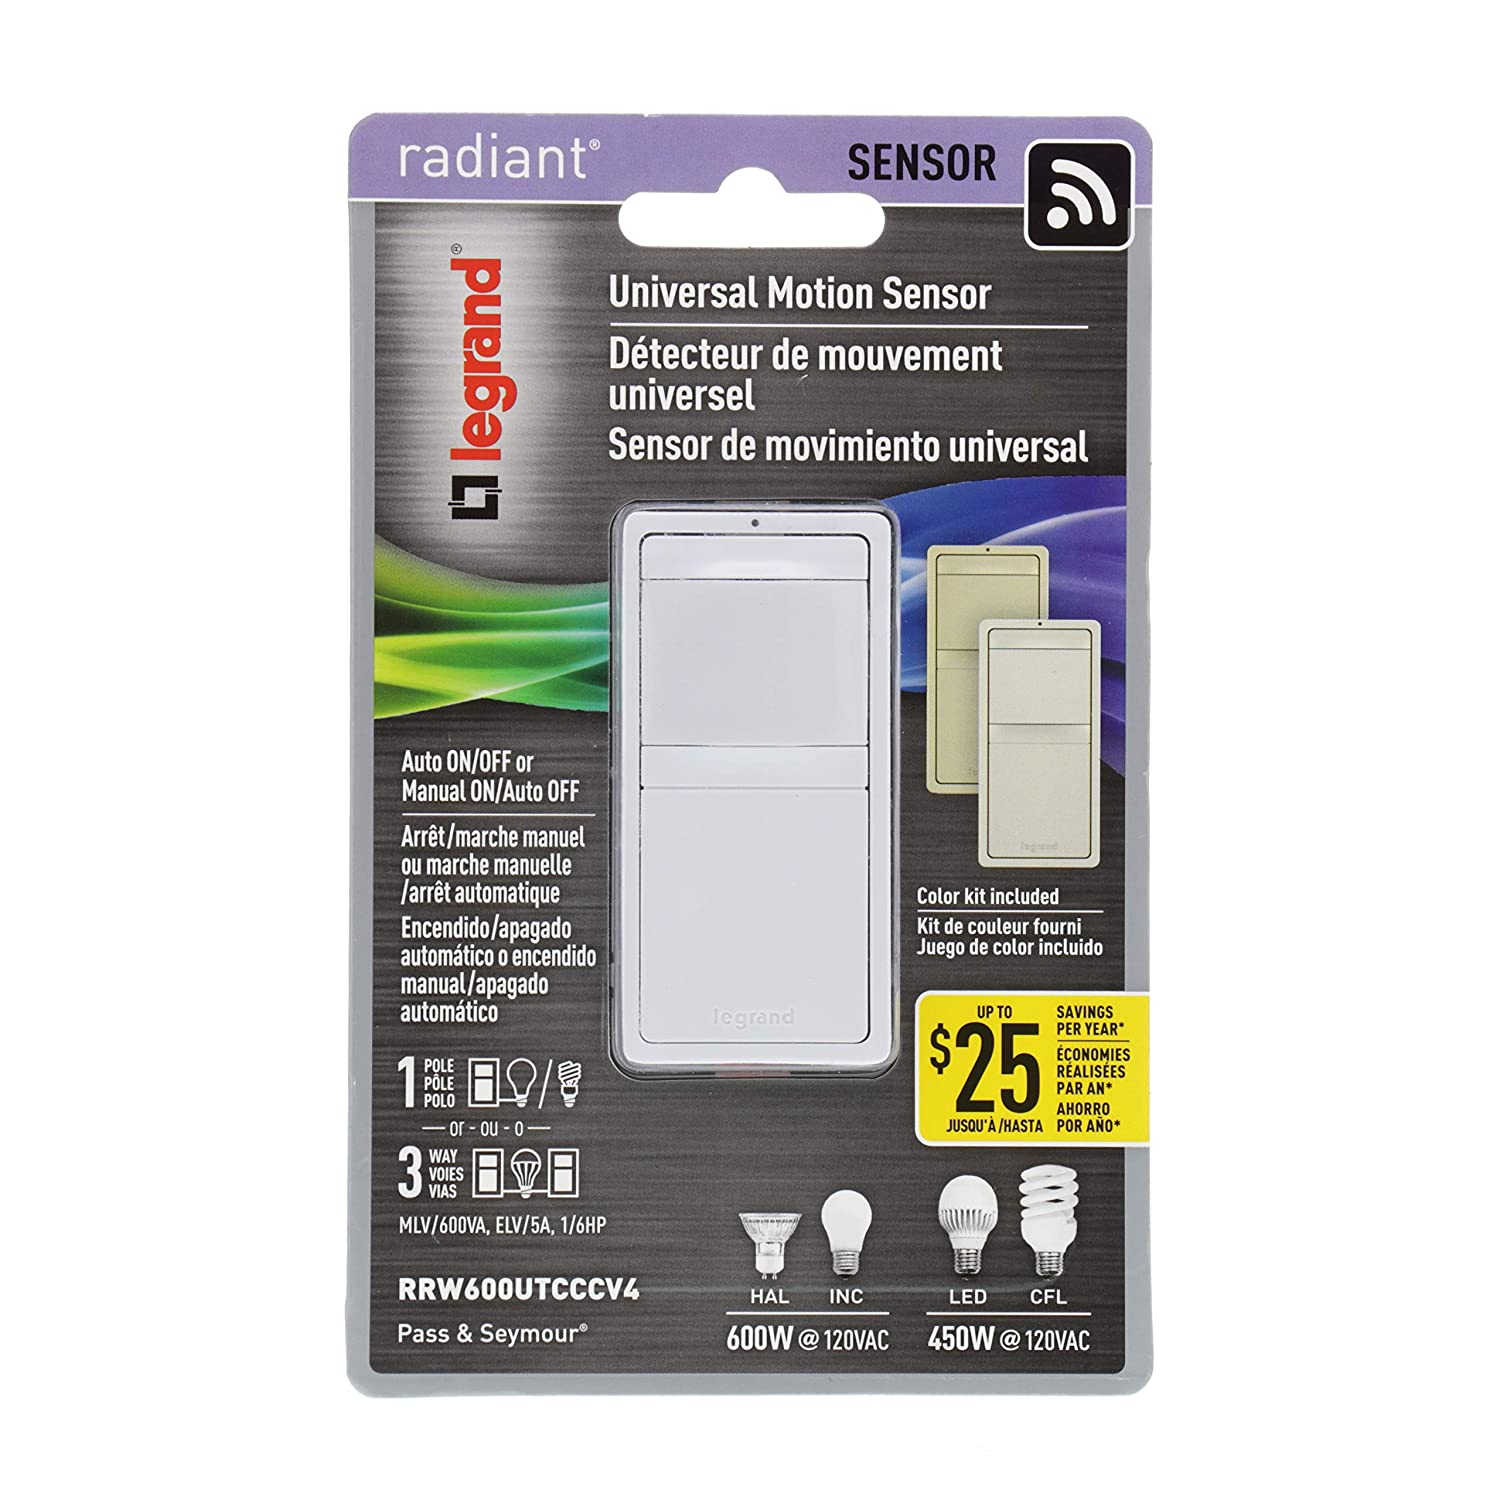 Legrand Pass Seymour Radiant Rrw600utcccv4 Single Pole 3 Way Wiring A Three Switch With Ceiling Fan Light Occupancy Sensor Tri Color Includes Interchangeable Face Covers White Ivory